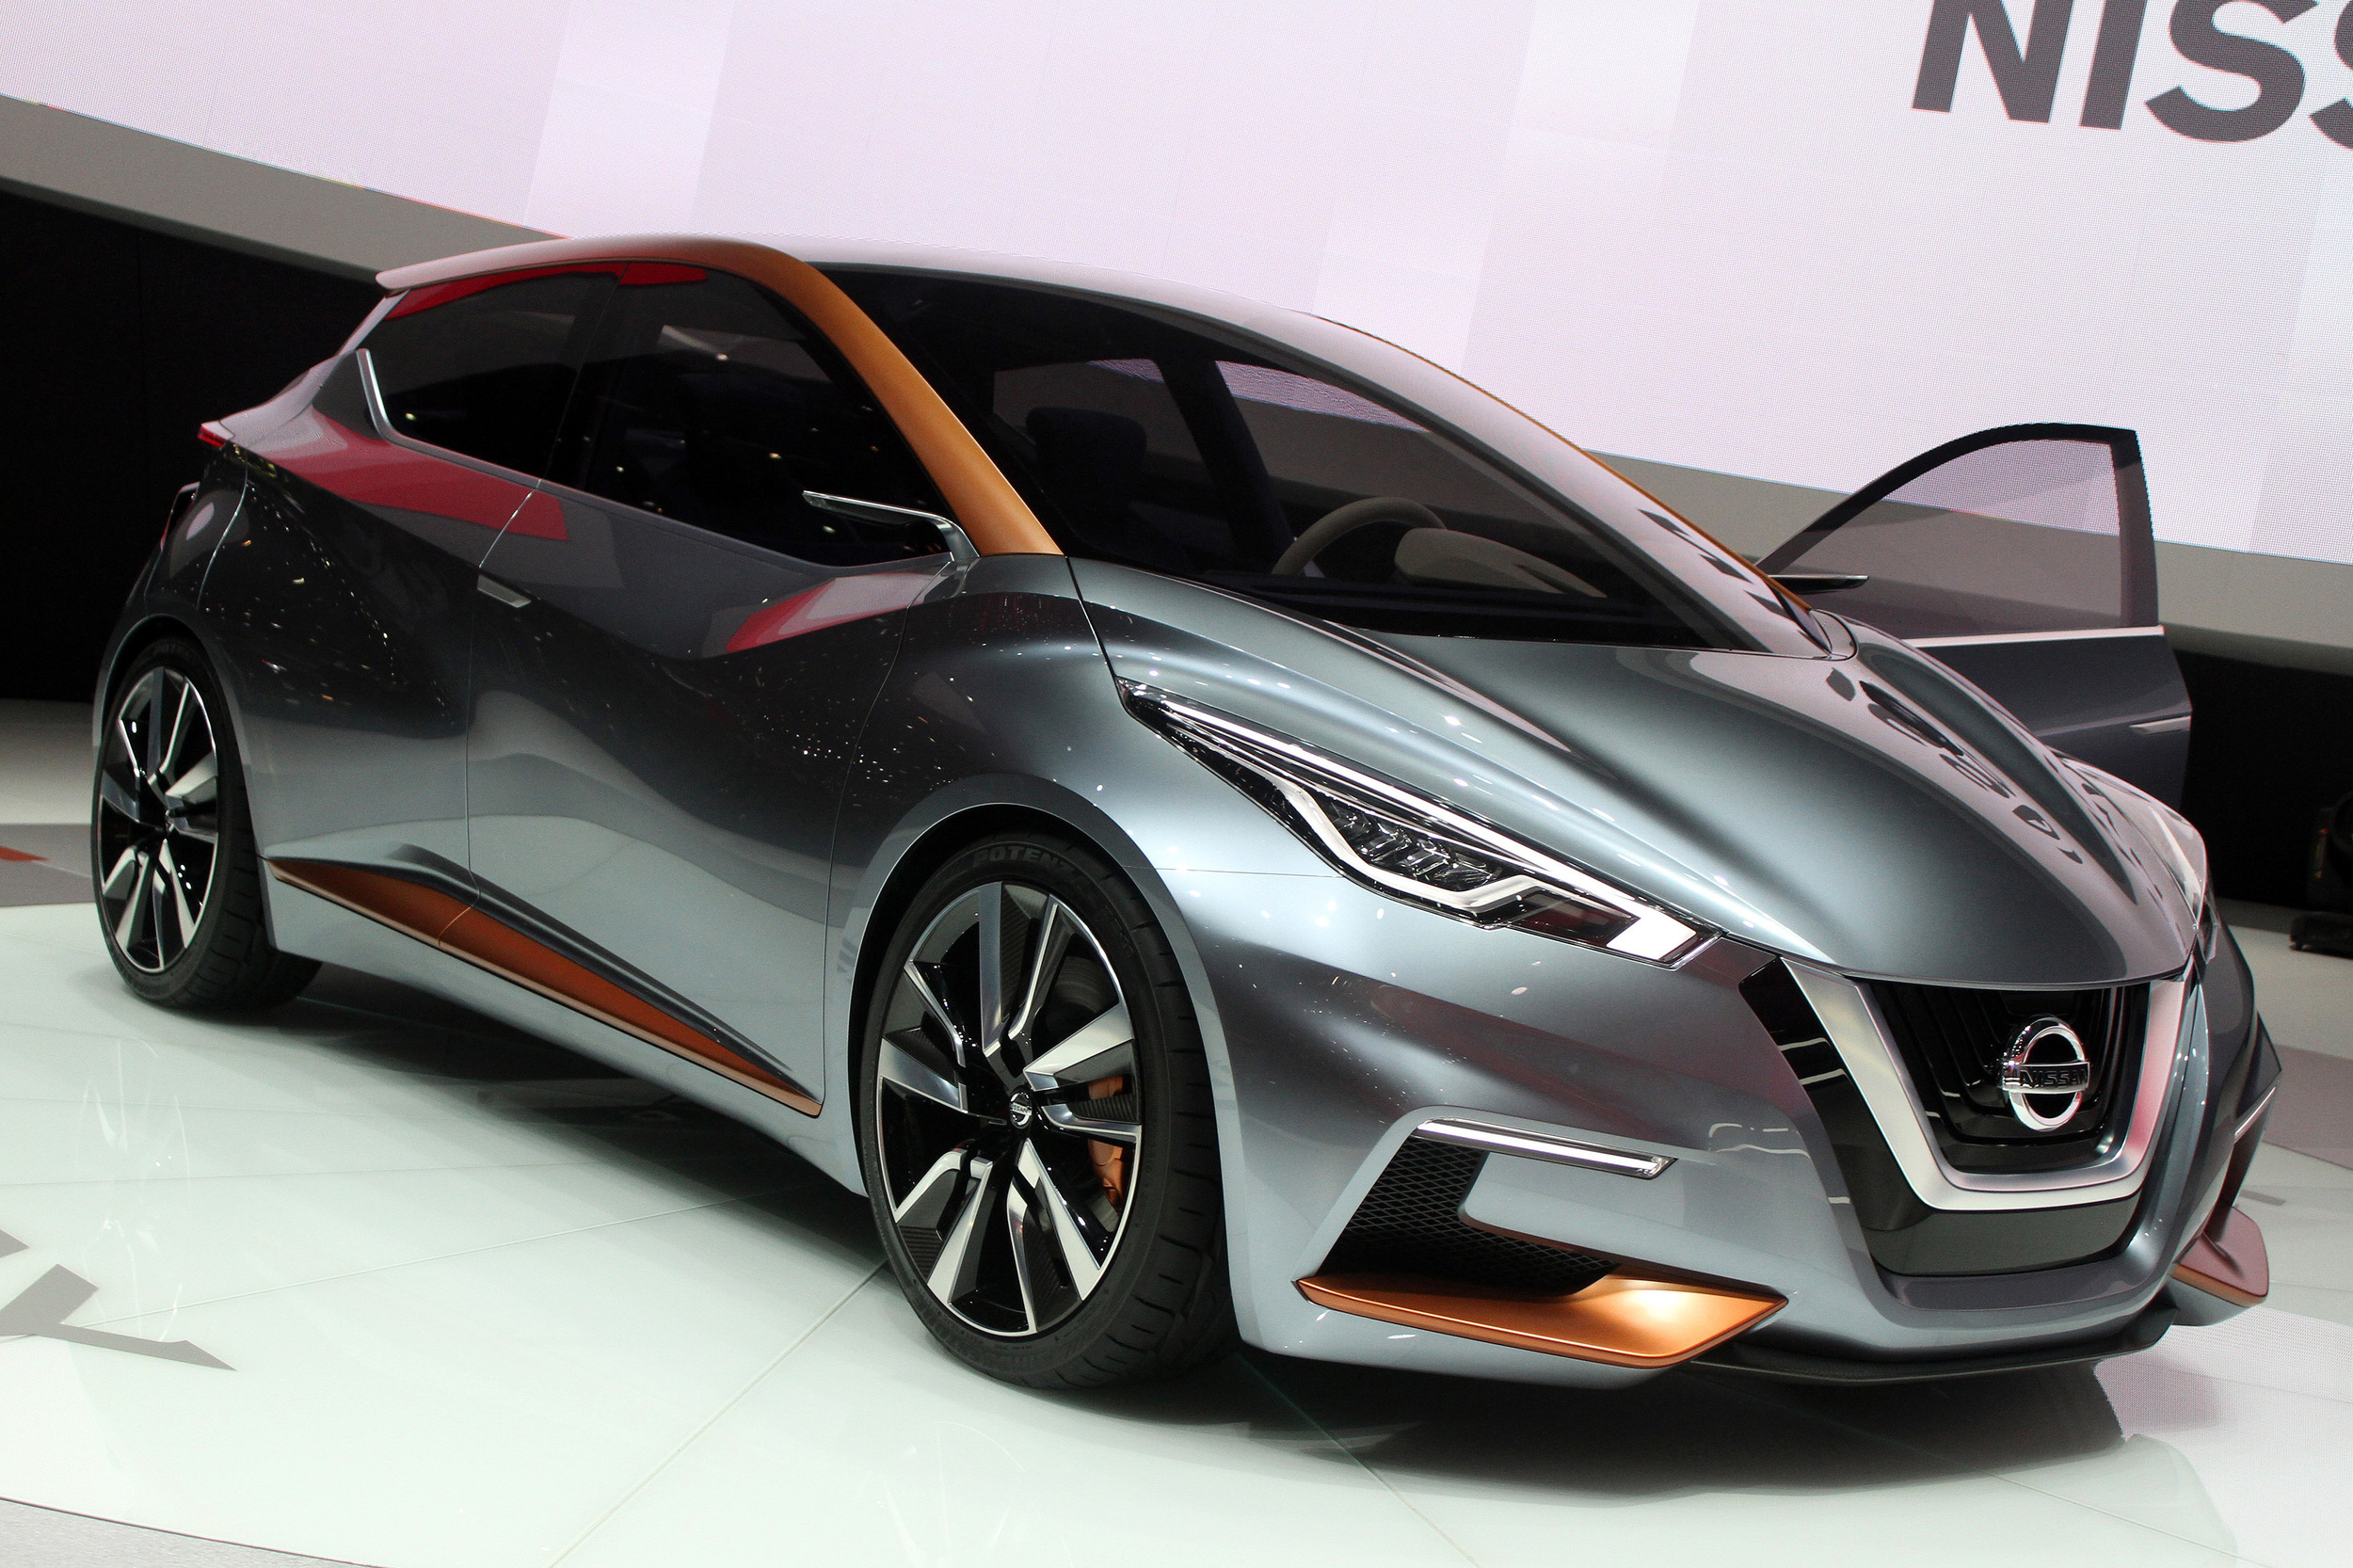 nissan-sway-concept-02-1-1